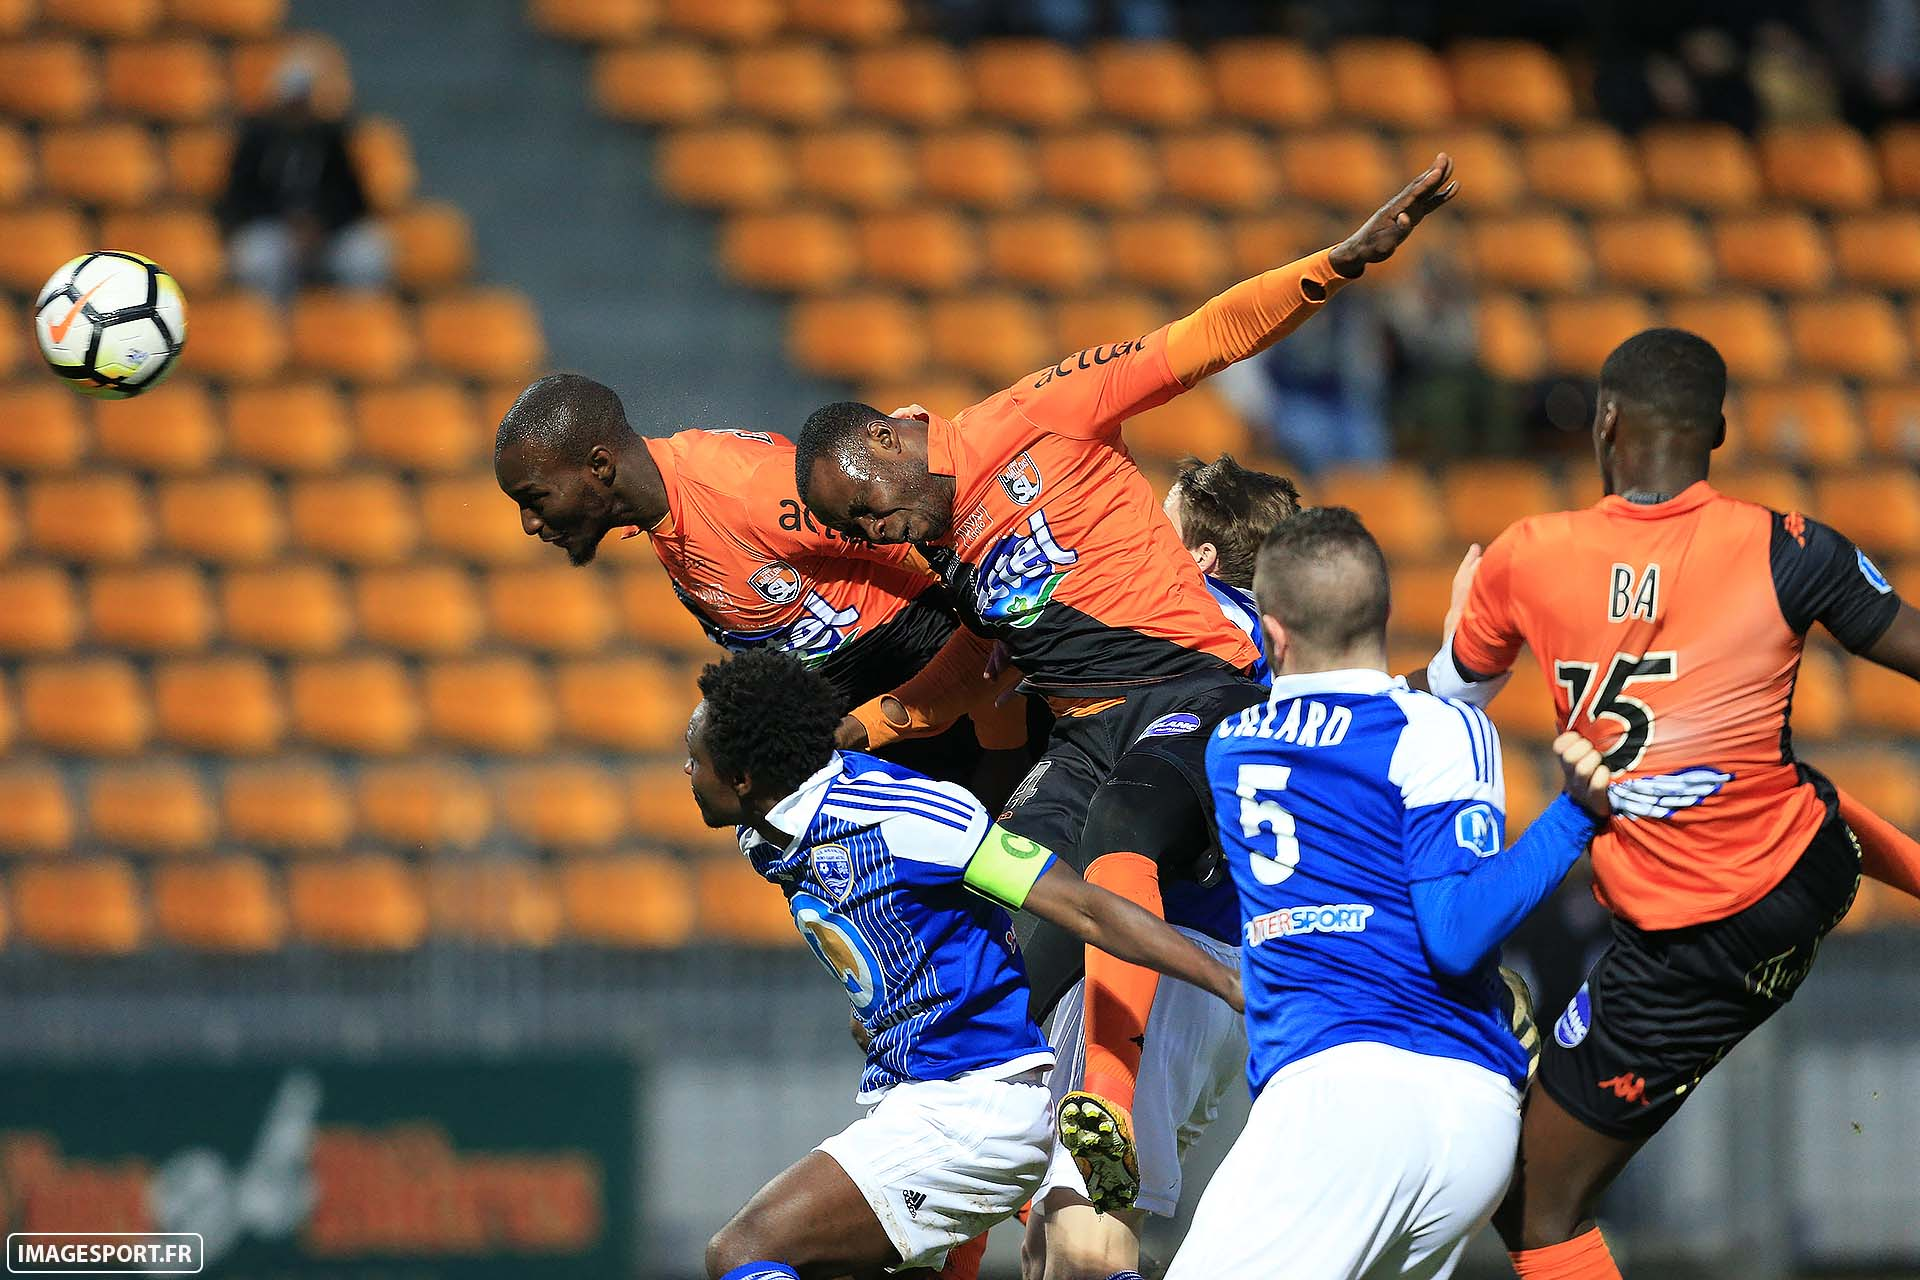 Bira DEMBELE (Stade Lavallois) / Charles BOATENG (US Avranches Mont-Saint-Michel) / Patrick ETSHIMI (Stade Lavallois)